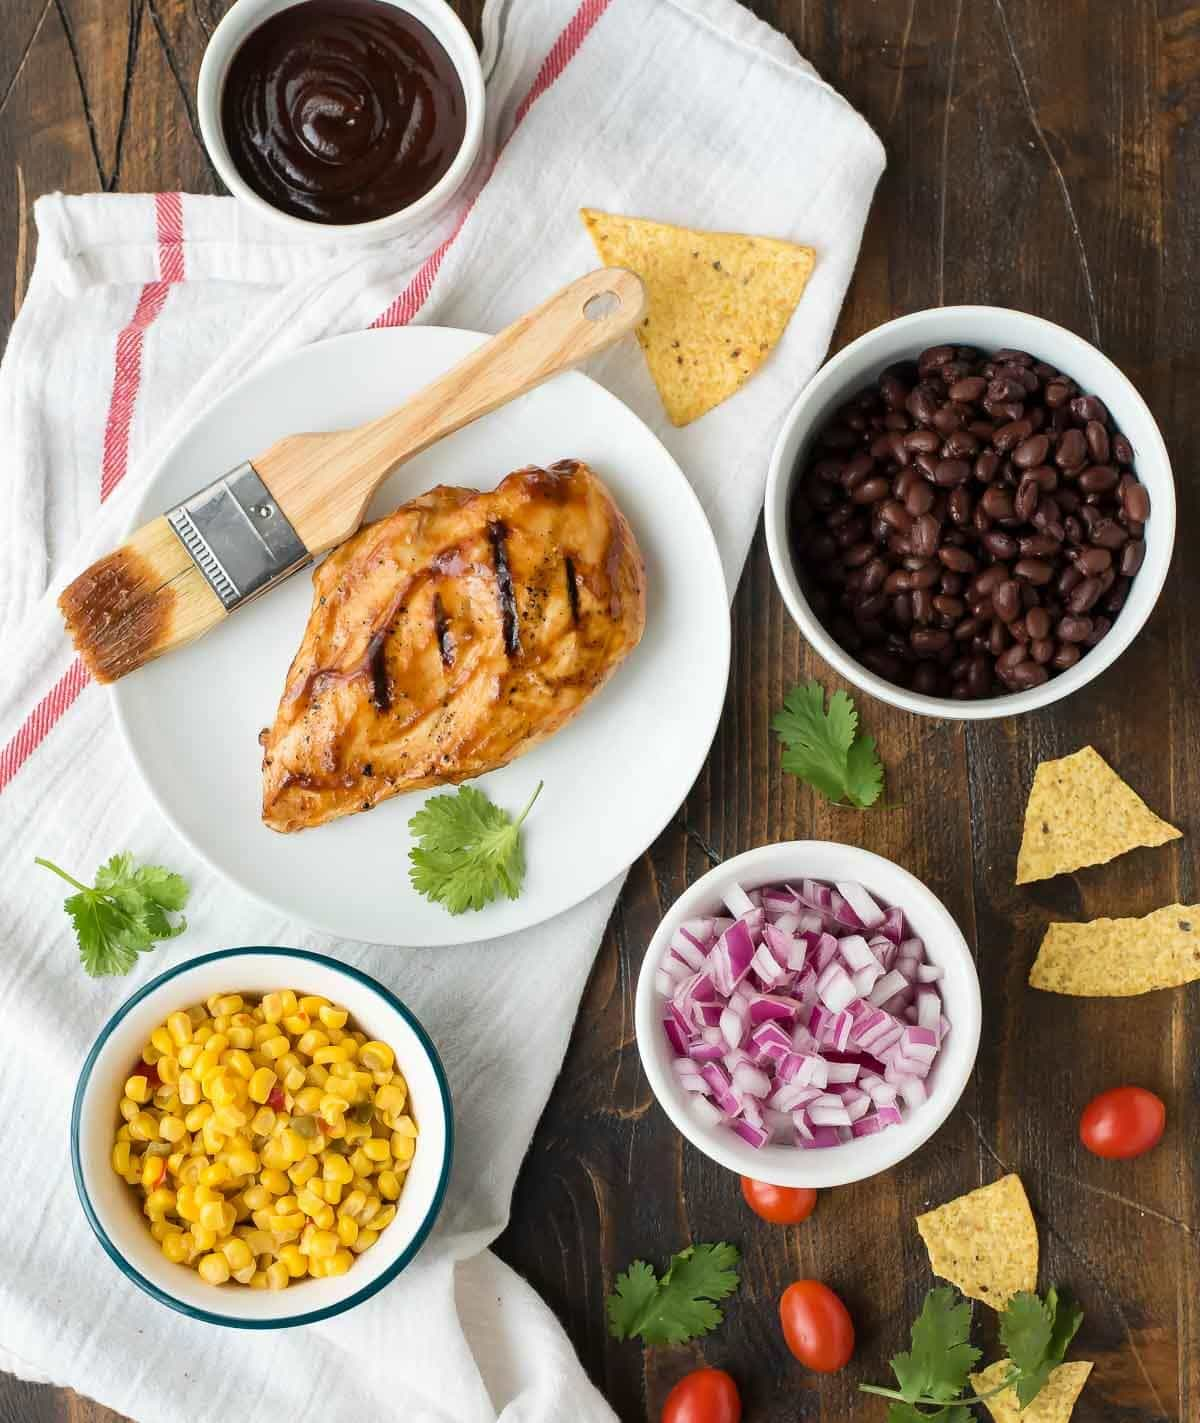 Copycat Panera BBQ Chicken Salad recipe — A healthy salad that comes together quickly, is filling, and tastes even better than the Panera original! Loaded with fresh veggies, juicy chicken, creamy ranch, and crunchy tortilla chips. @wellplated